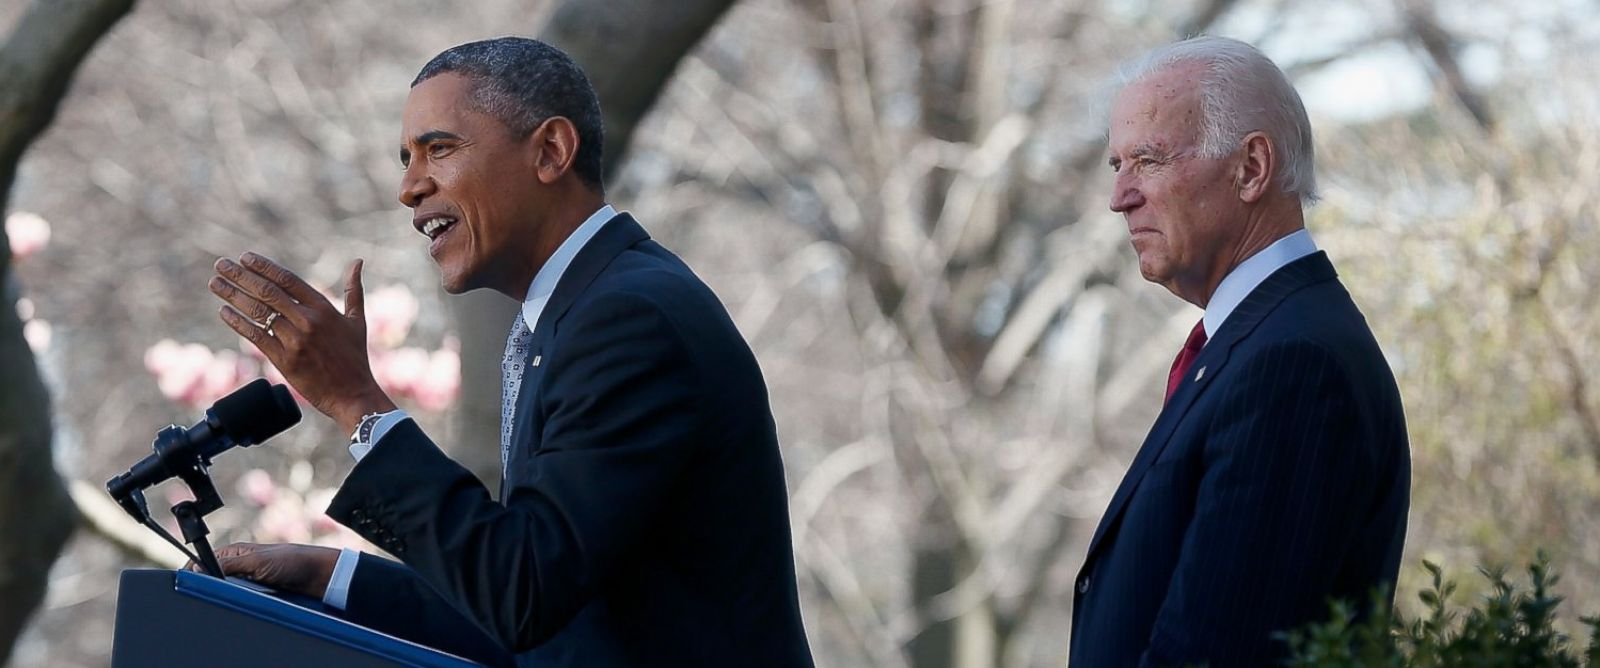 PHOTO: Barack Obama, left, and Joe Biden, right, are pictured in the Rose Garden of the White House on April 1, 2014 in Washington, D.C.